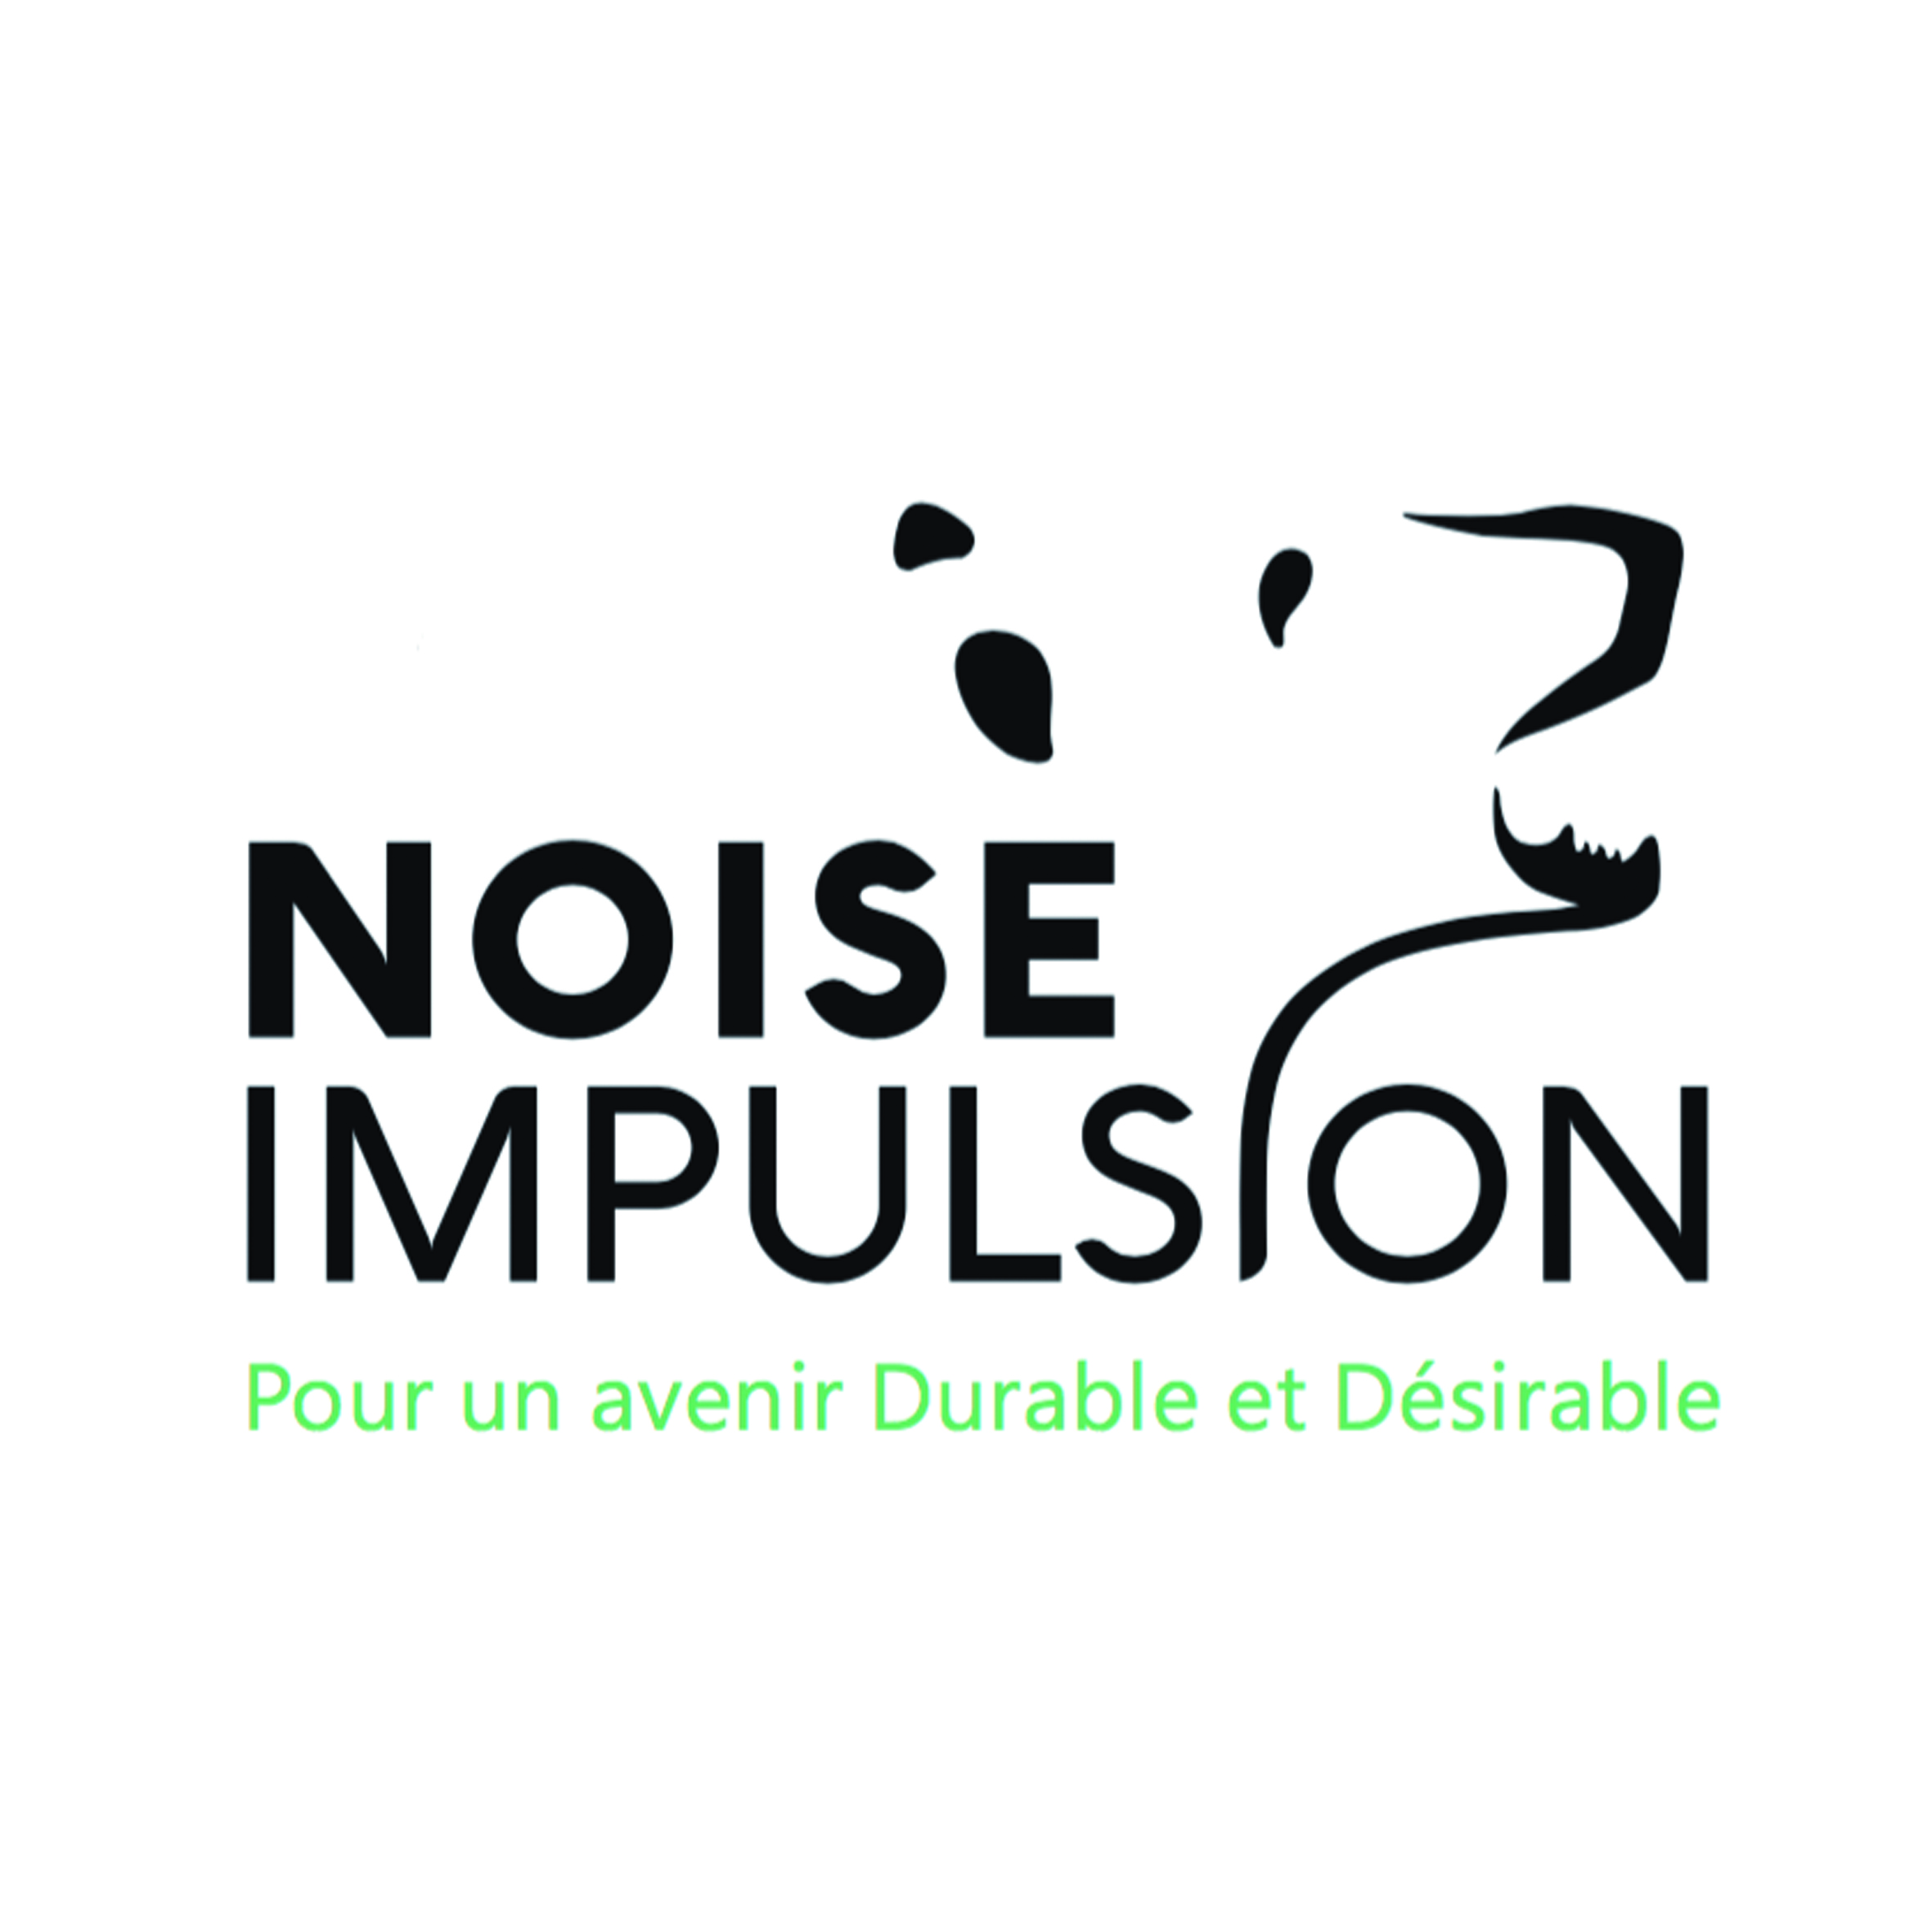 Association - Noise Impulsion Association